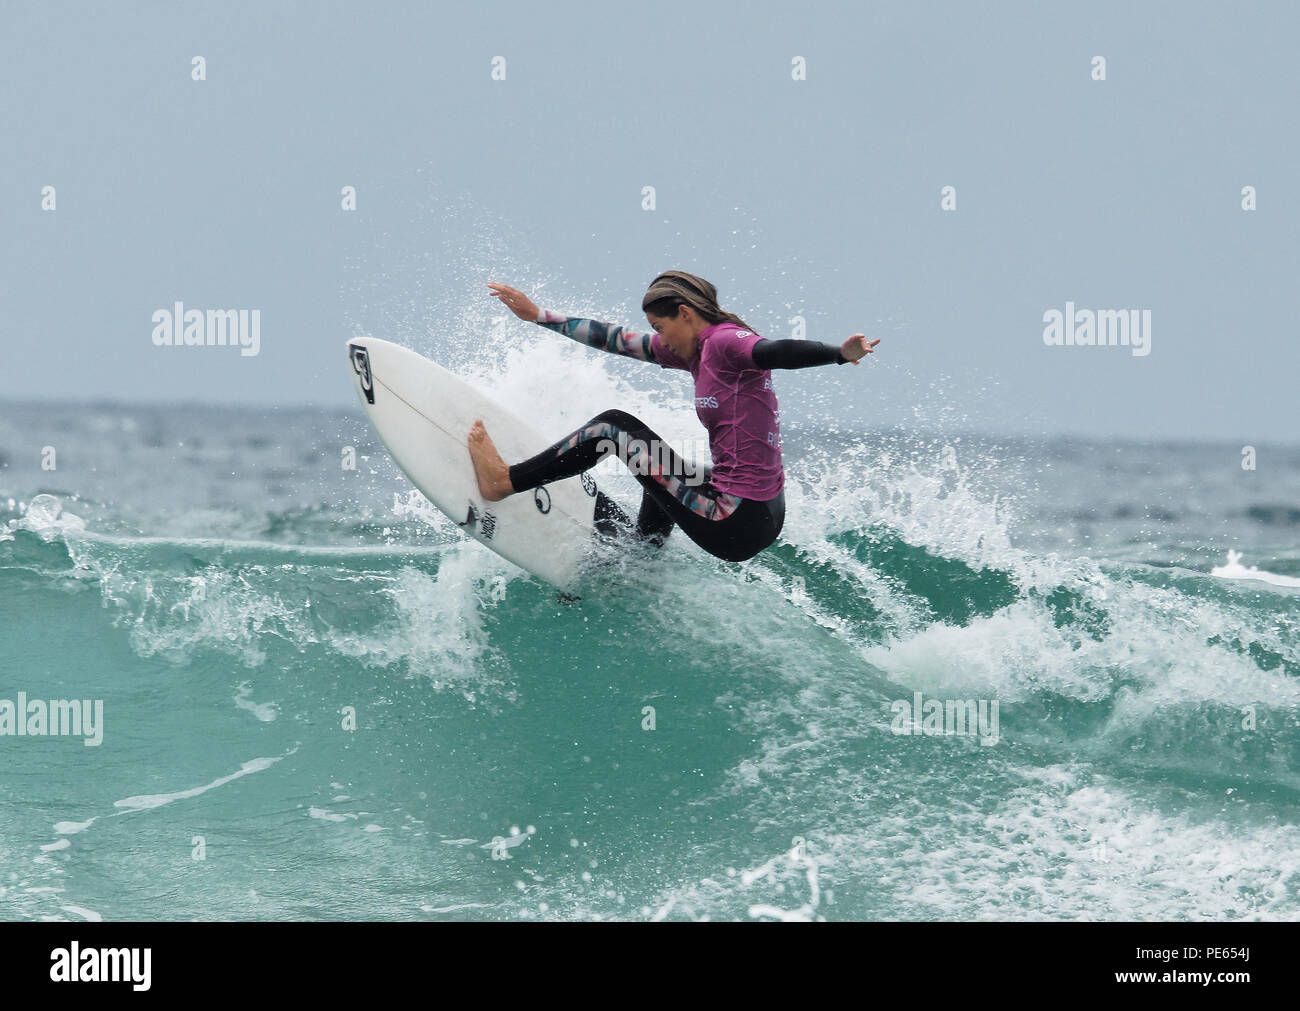 I surfer in french